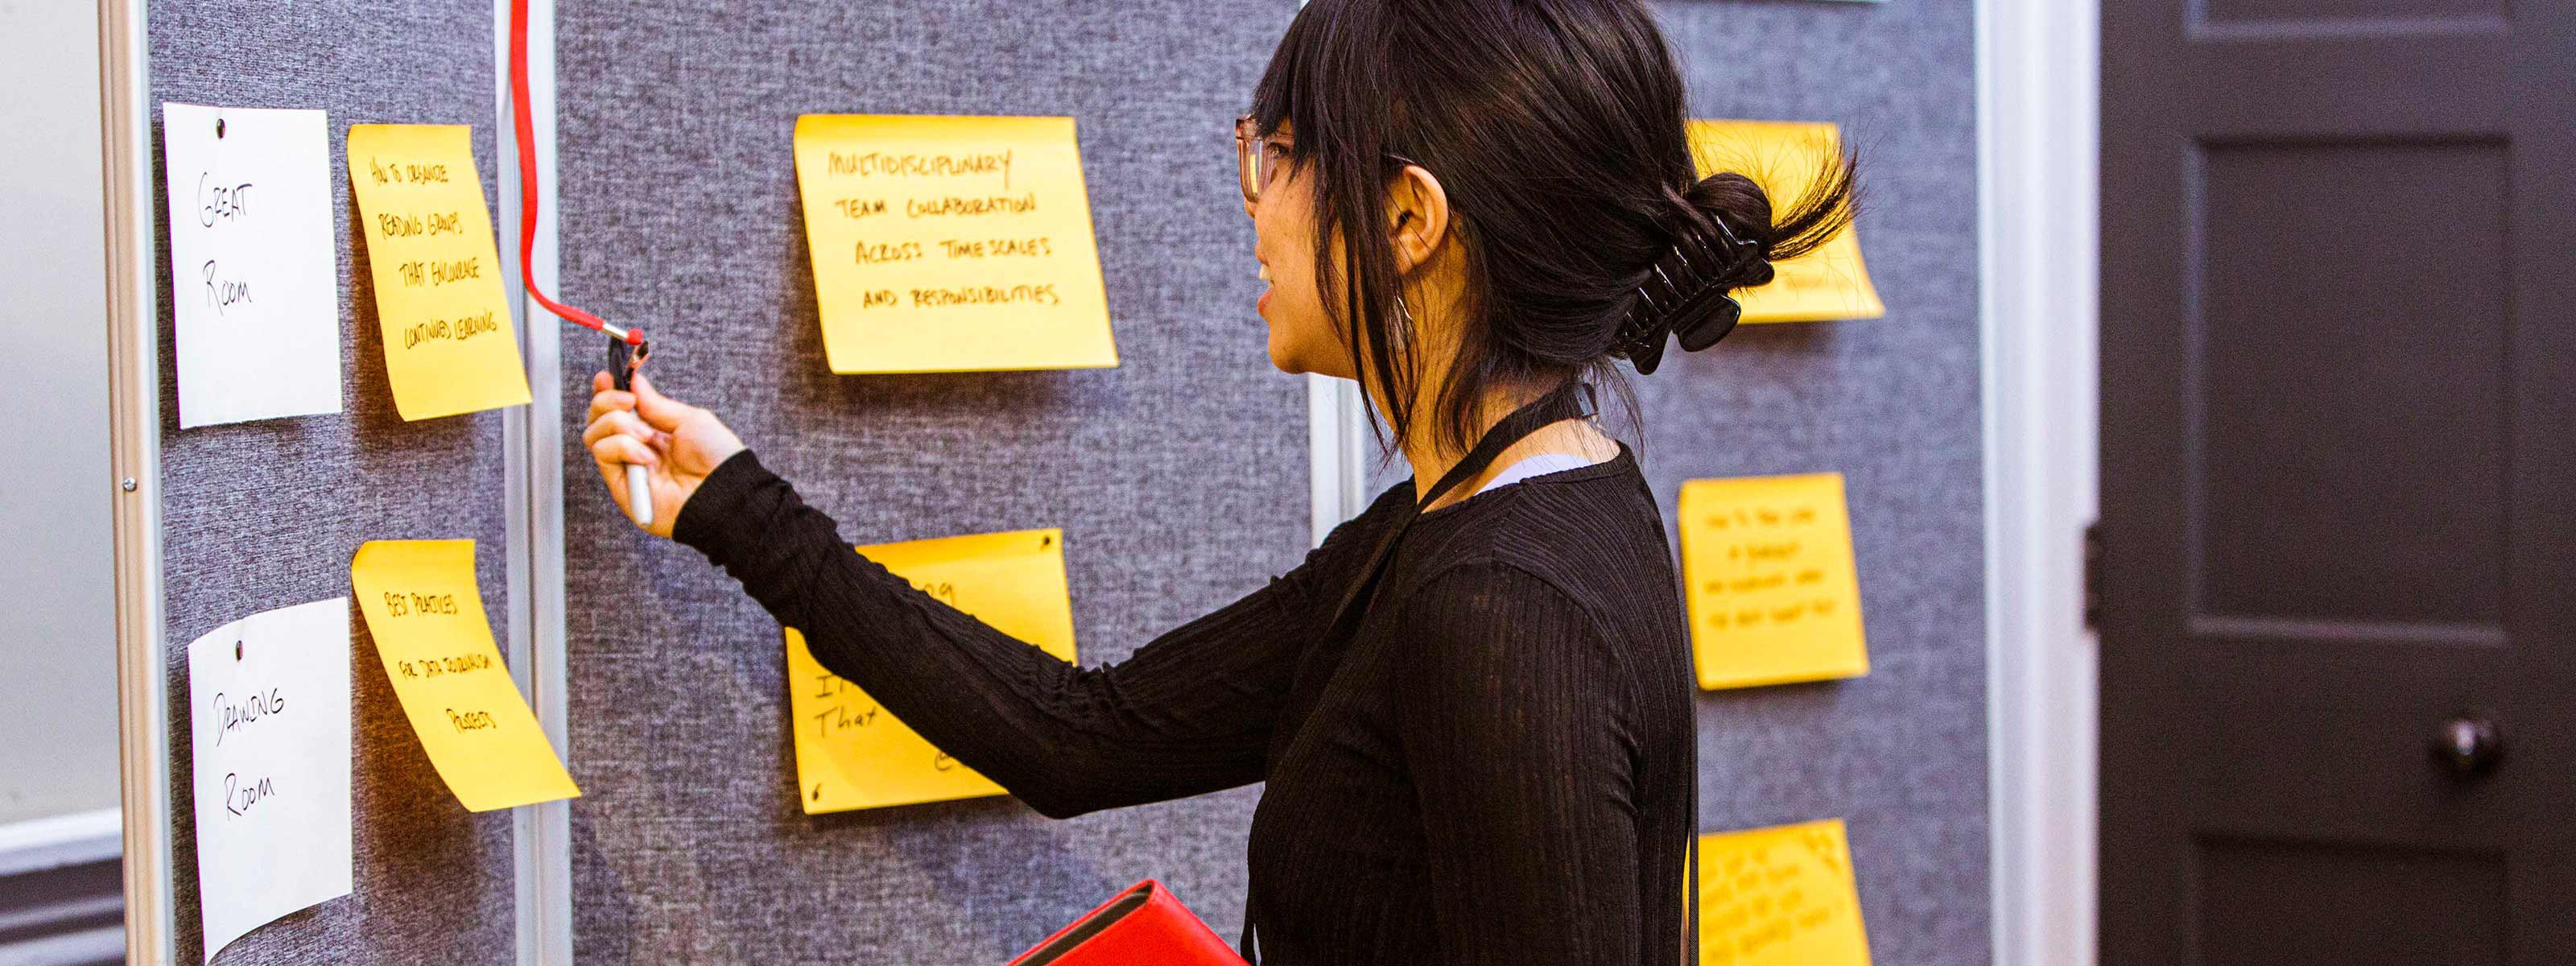 A person taking a pen off a wall and writing on sticky notes attached to the notice board